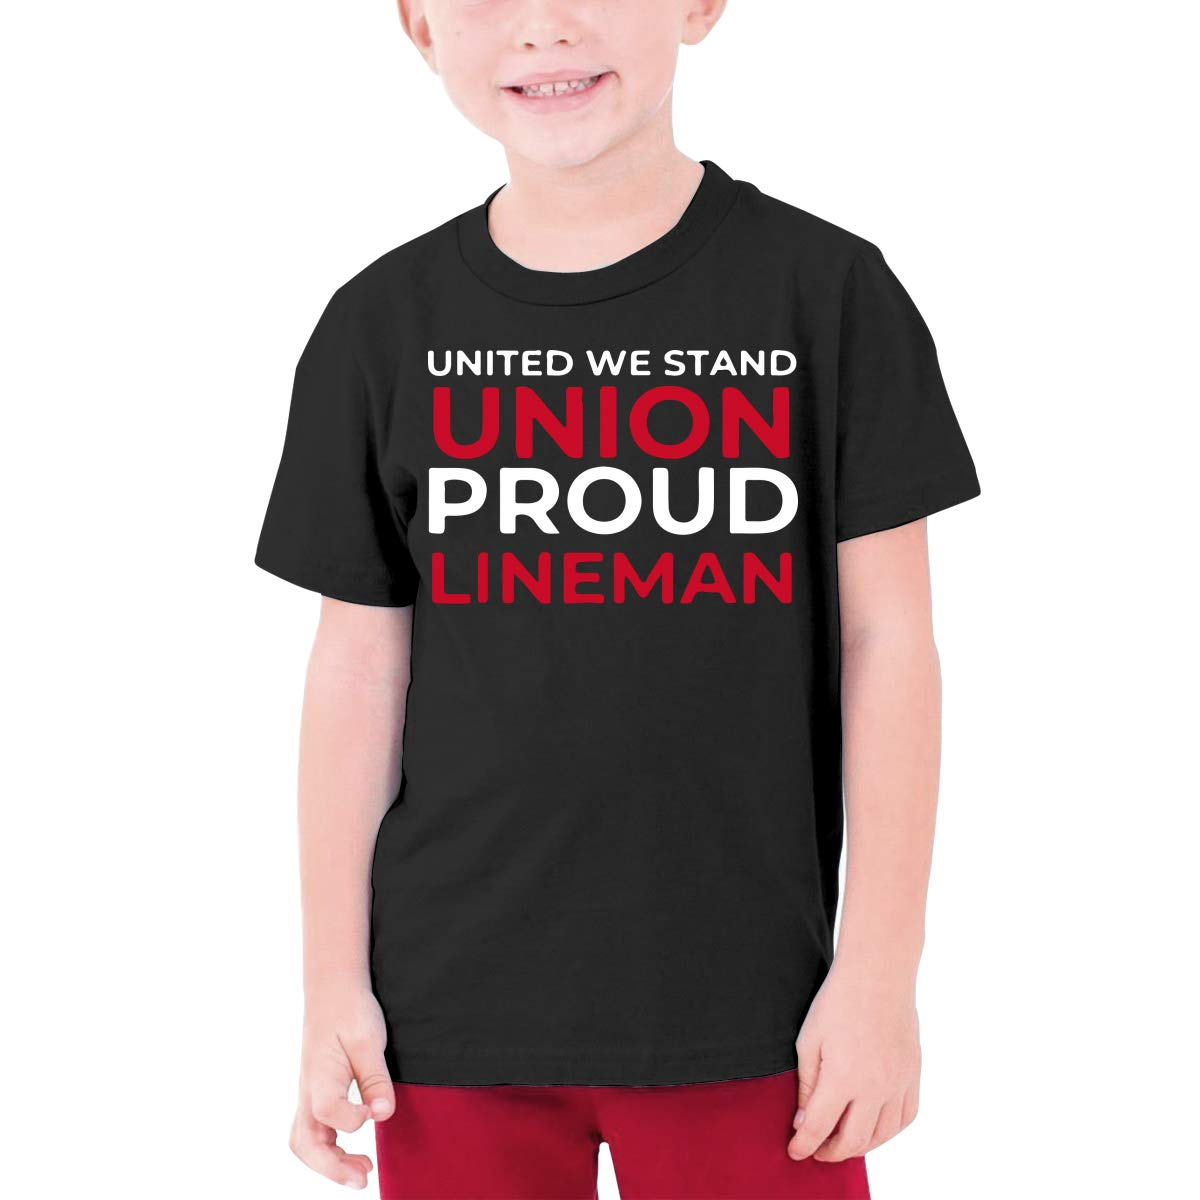 United We Stand Union Proud Lineman Youth Boys Short-Sleeved Tshirt